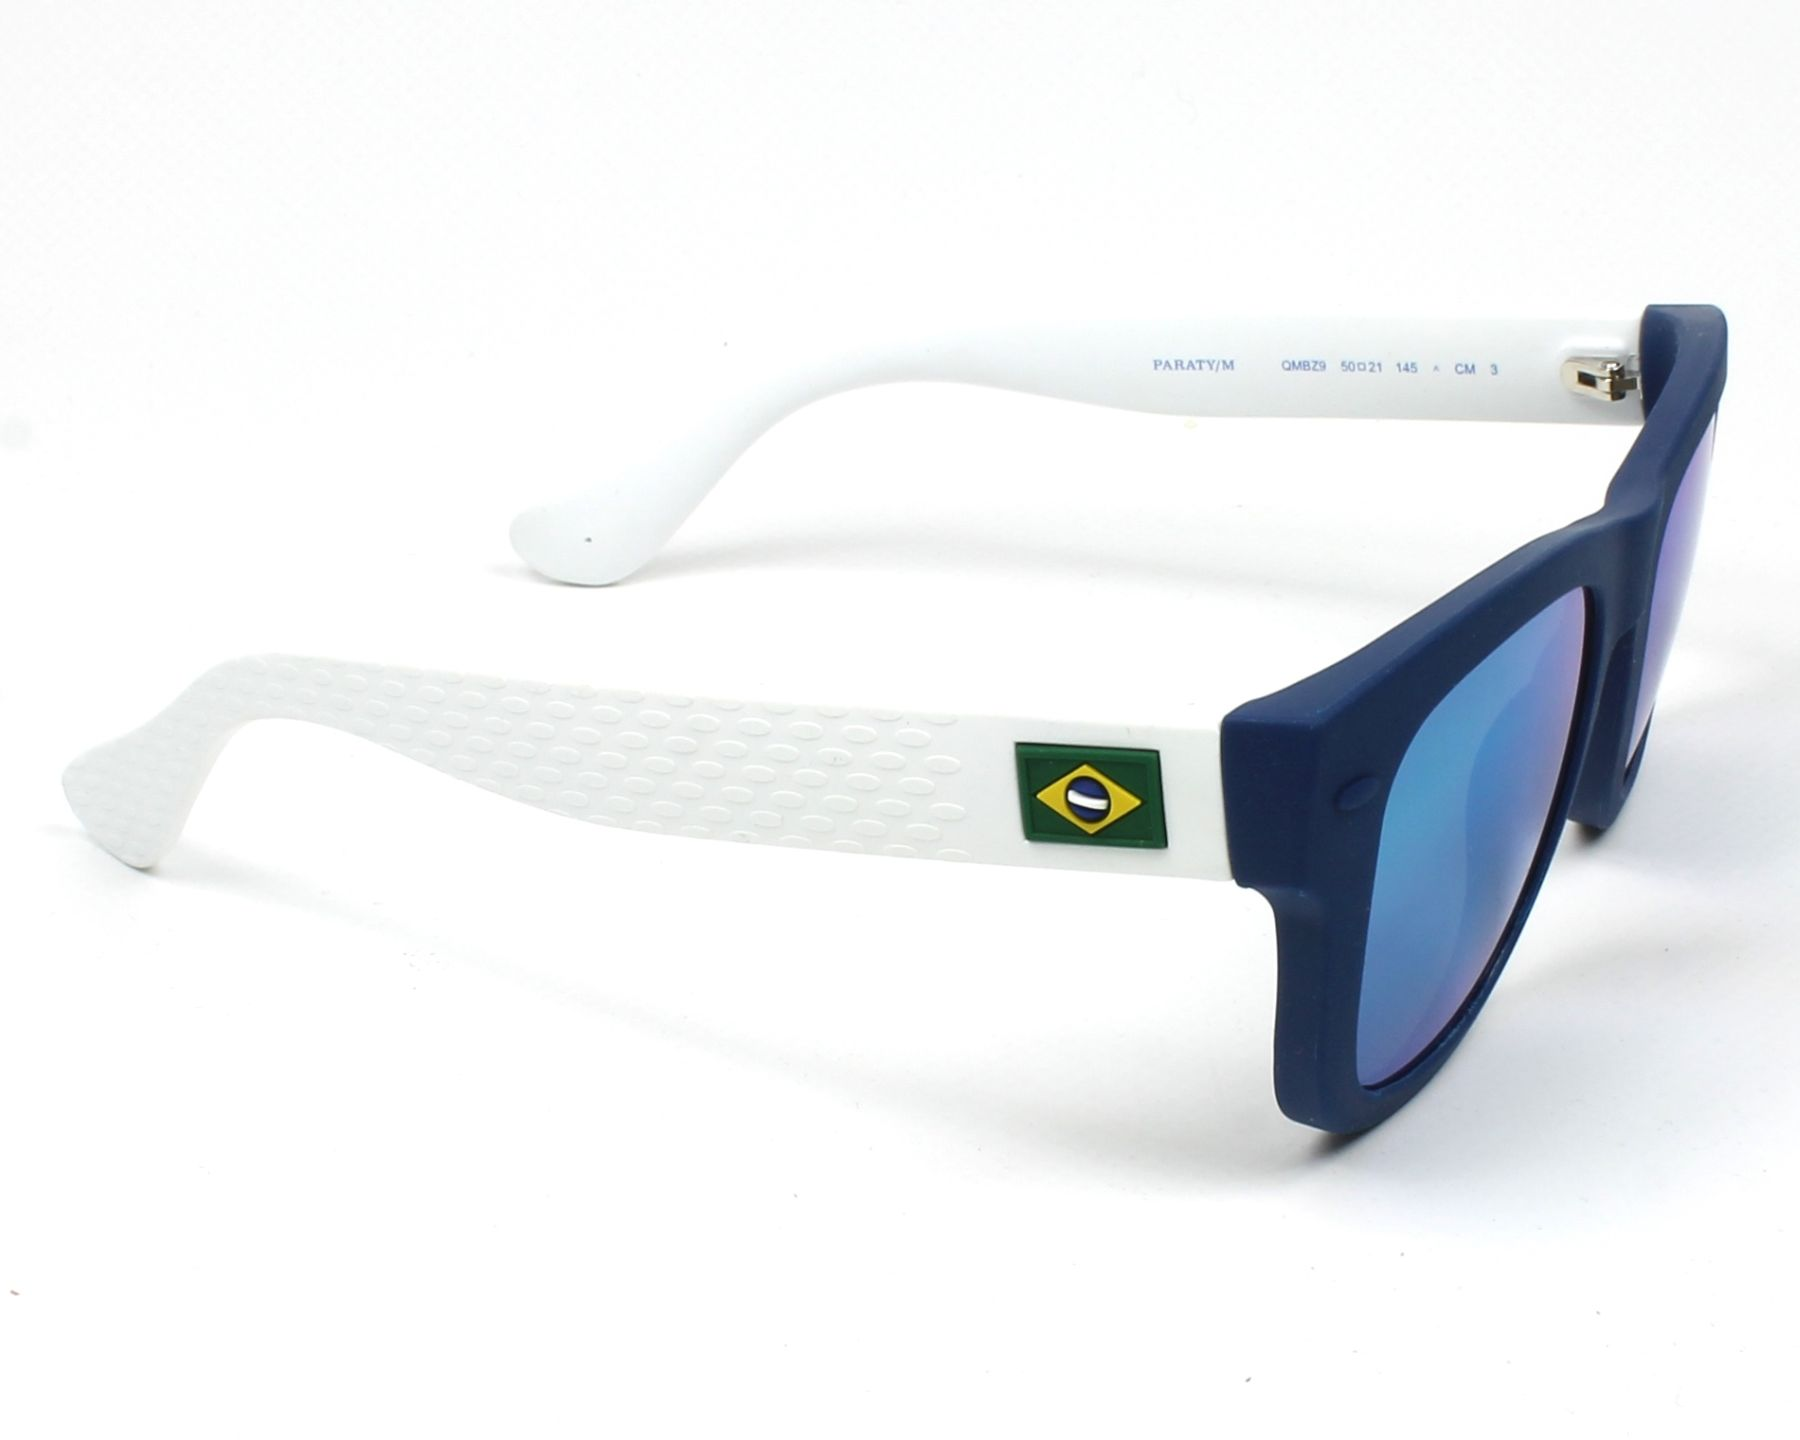 29c0aa55527 Sunglasses Havaianas PARATY-S QMB Z9 48-19 Blue White side view